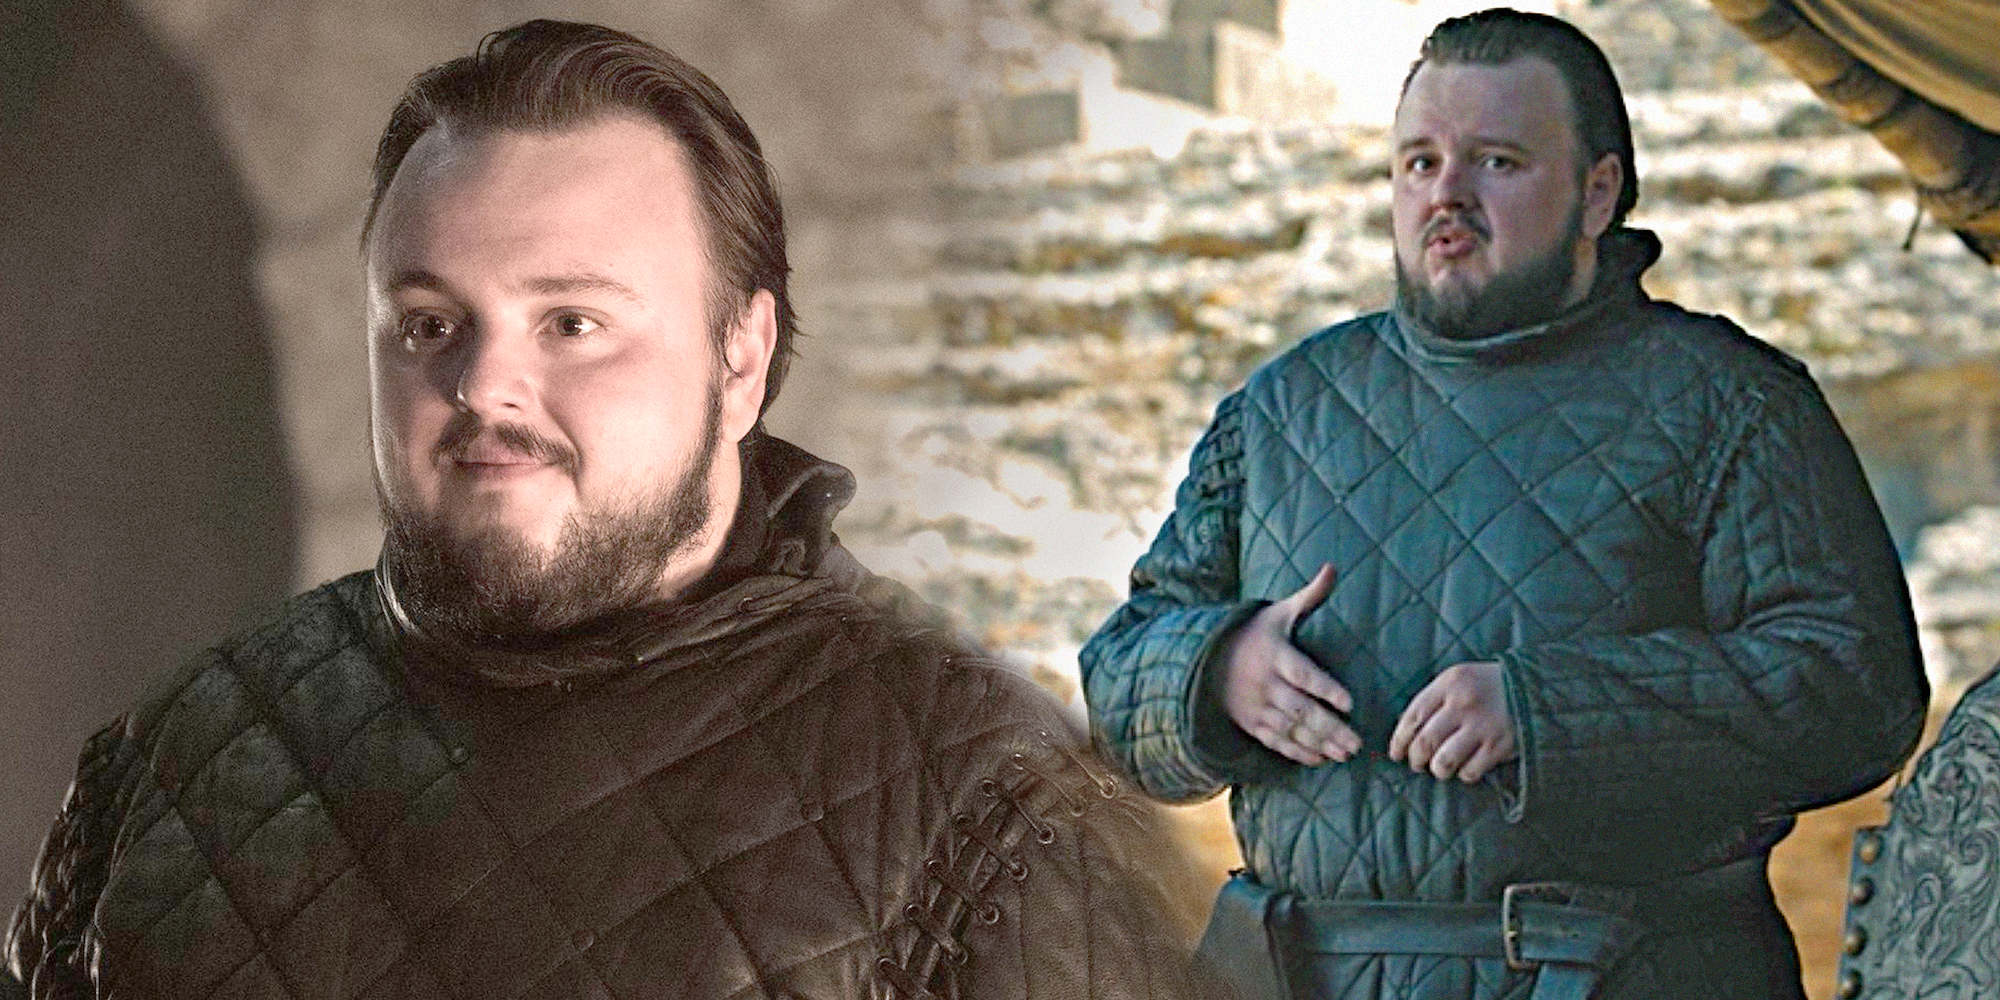 Game of Thrones Star John Bradley Fills in the Samwell Tarly Story You Didn't See in the Finale